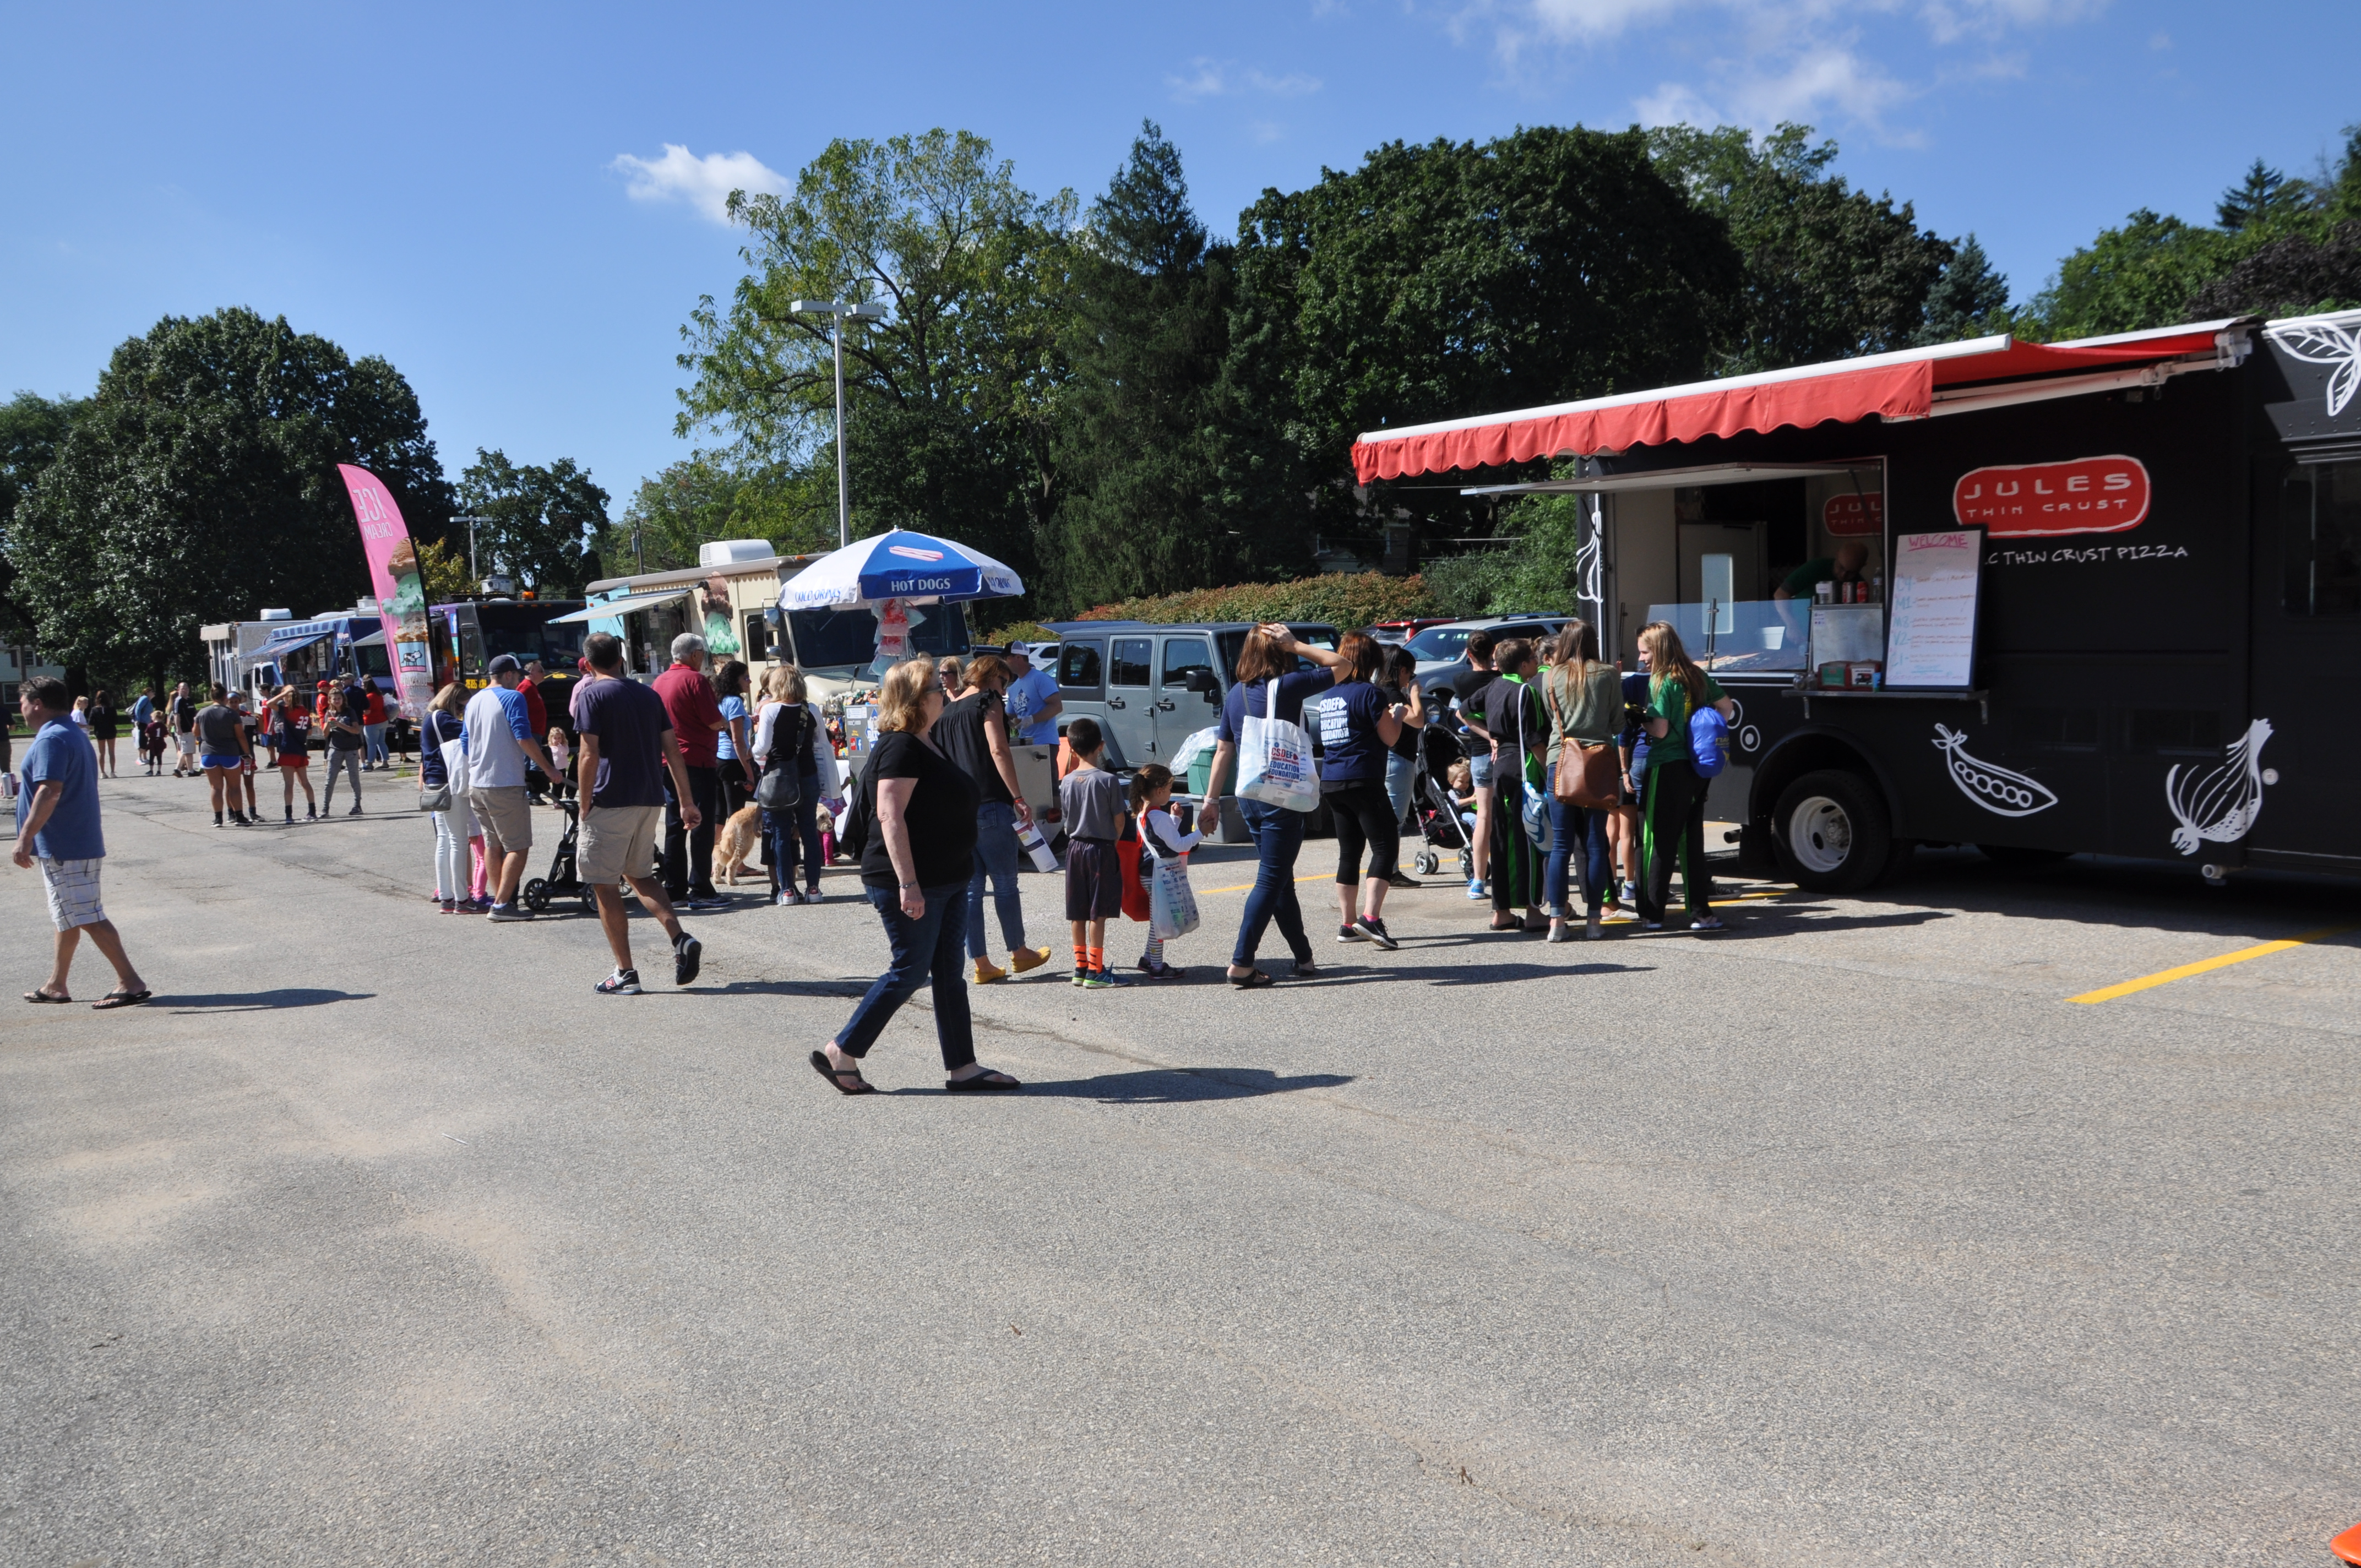 Several Food trucks with people lined up